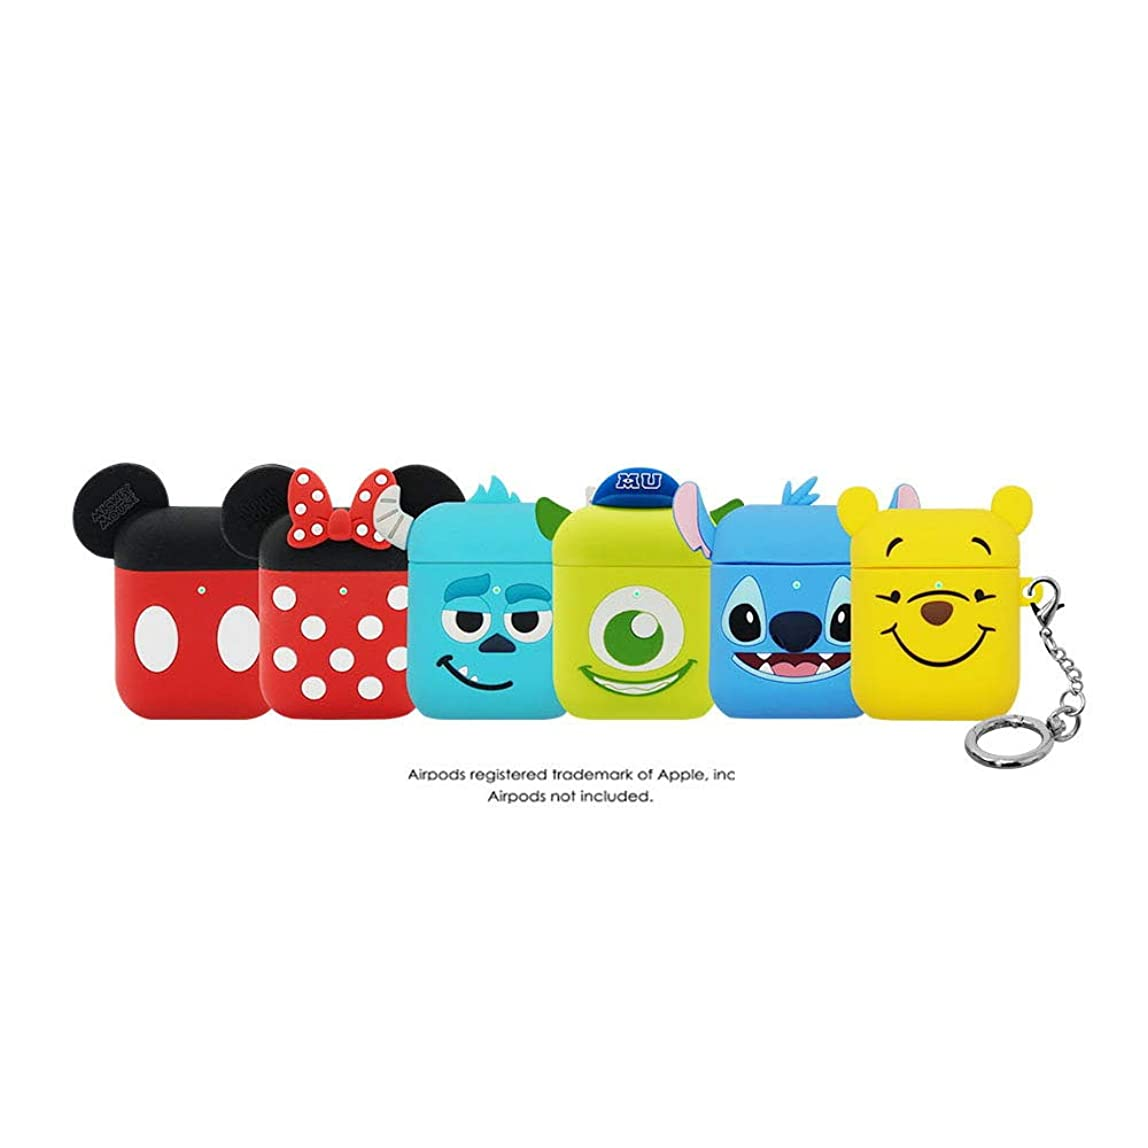 「NEW 1?2世代共用」(リング付き) DISNEY?PIXAR AIRPODS SILICONE CASE APPLE ディズニー?ピクサー?エアーポッツ?シリコン?ケース?アップル (MIKE)